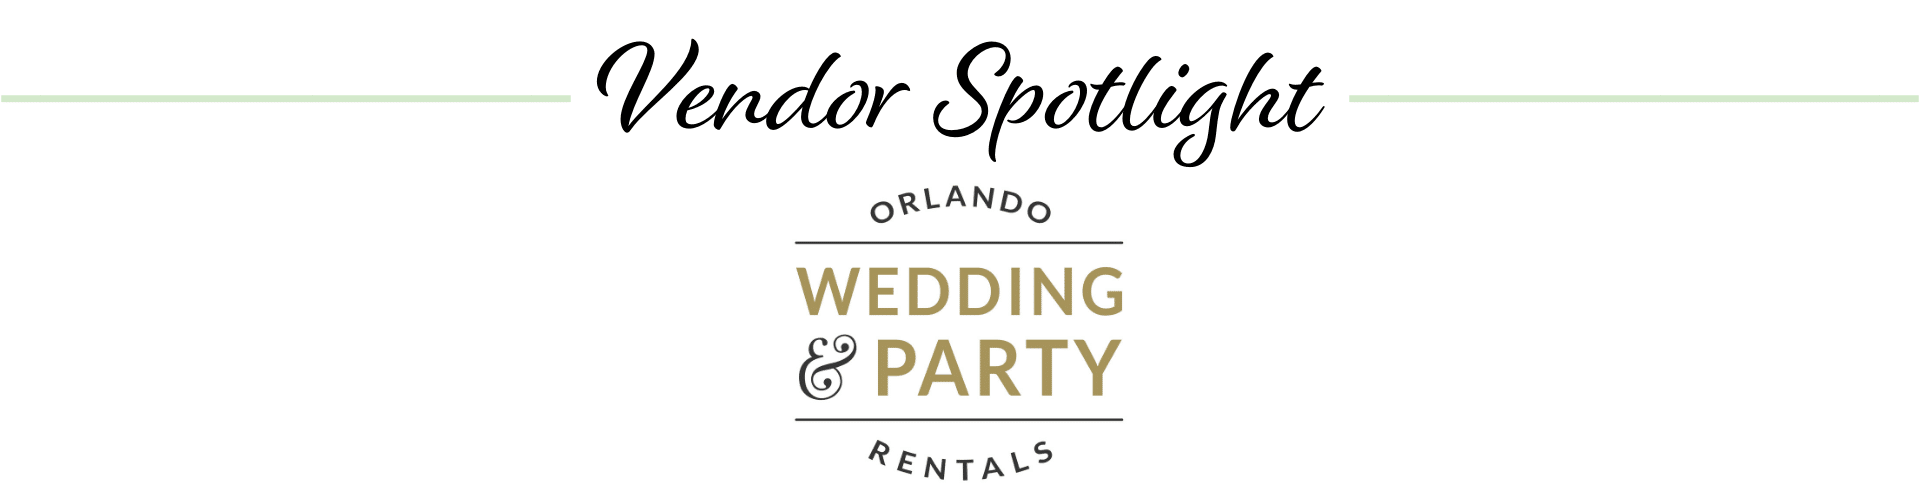 Orlando Wedding & Party Rentals logo